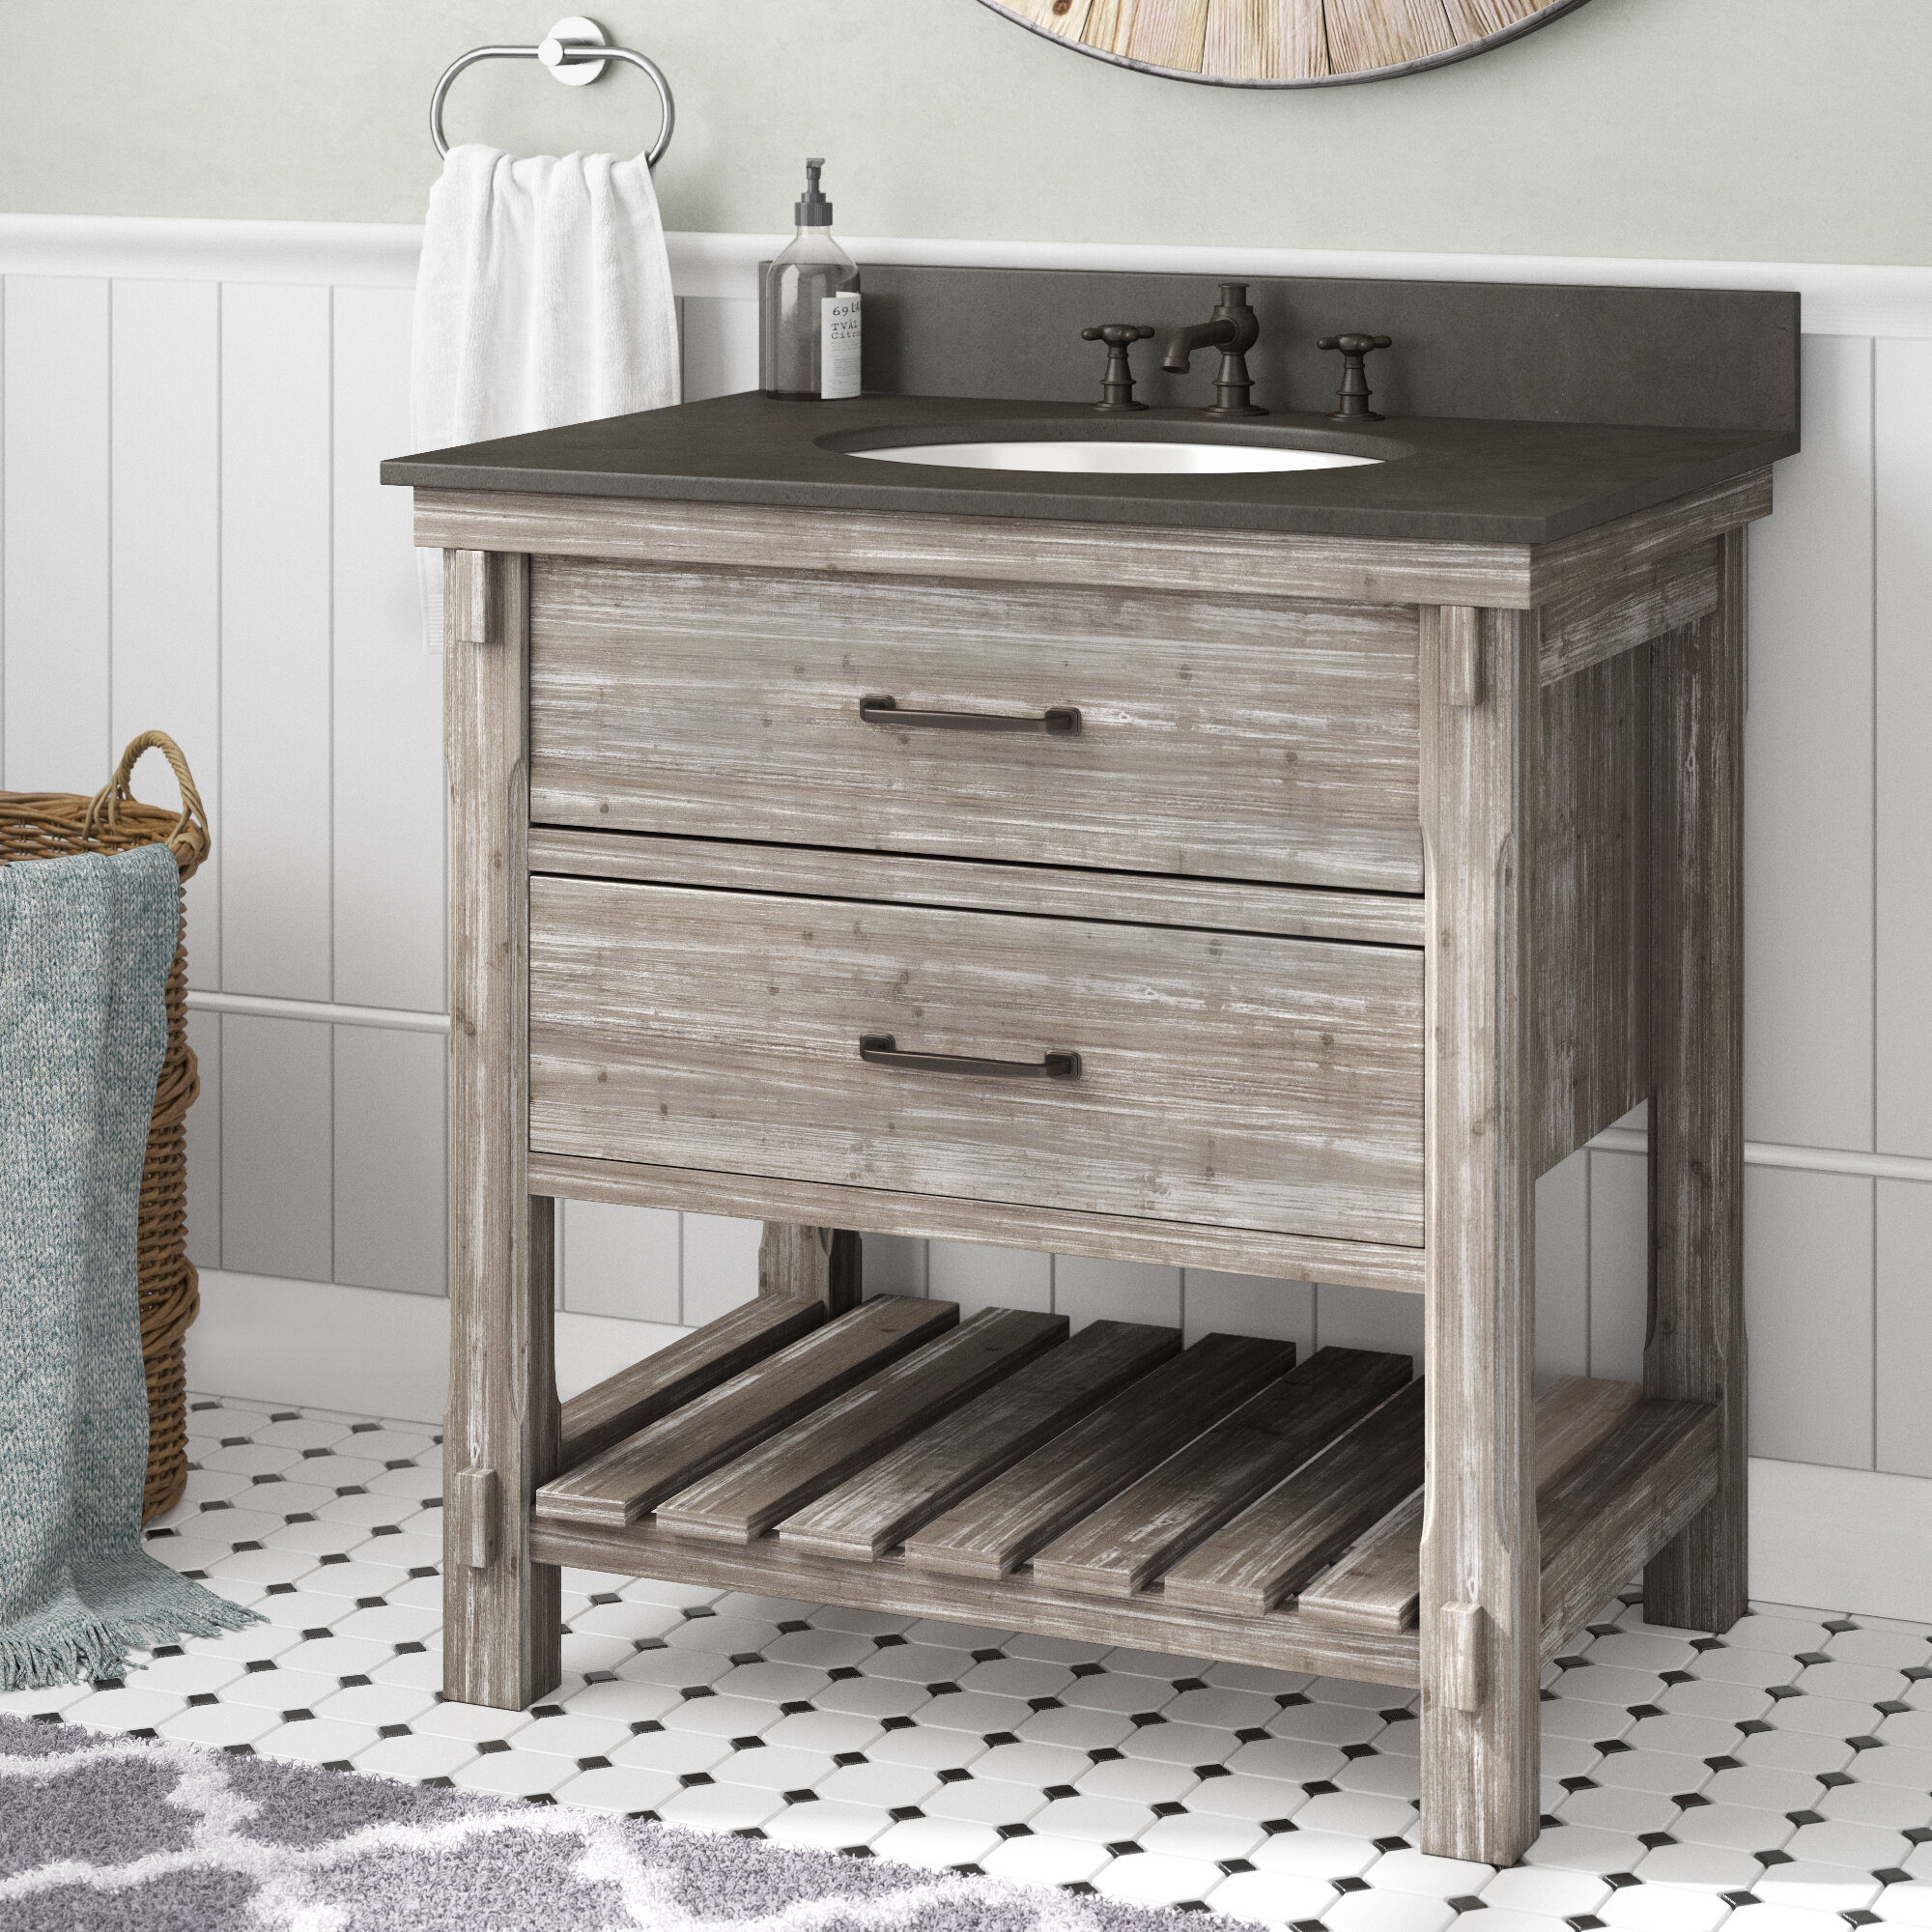 30 Inch Modern Farmhouse Bathroom Vanities You Ll Love In 2021 Wayfair